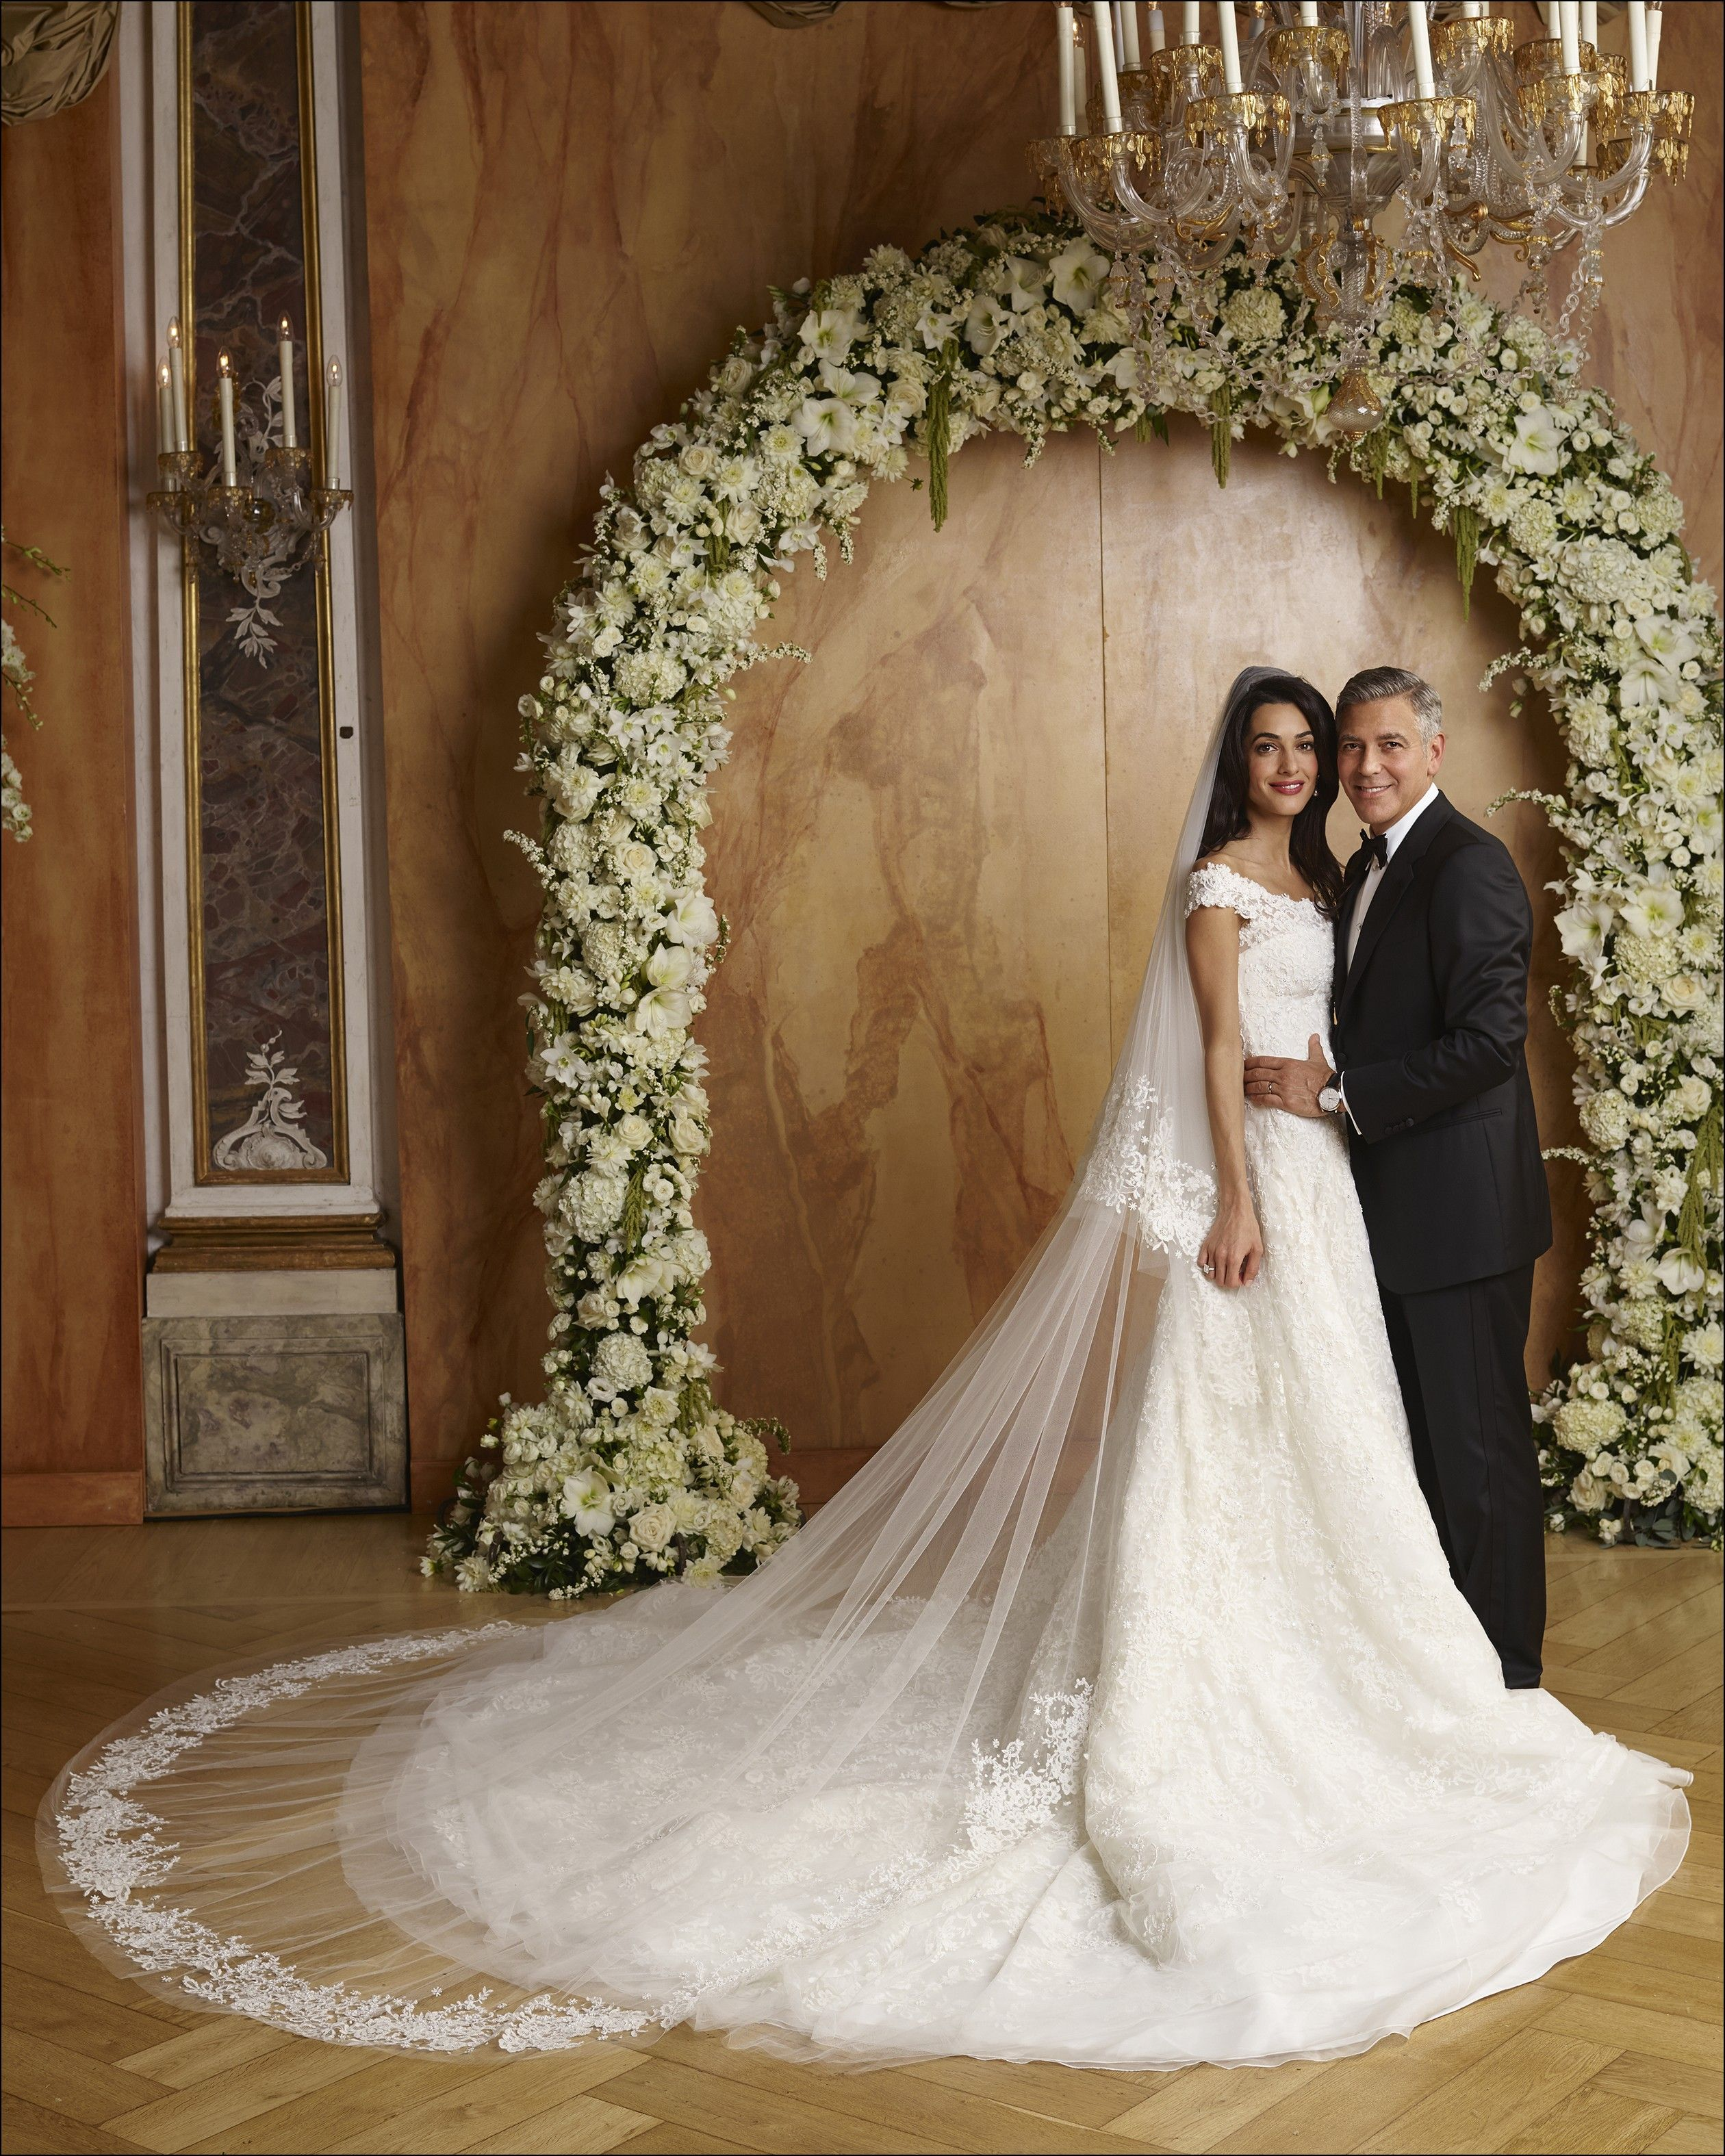 Famous wedding dresses  Famous Wedding Gowns  Dresses and Gowns Ideas  Pinterest  Gowns